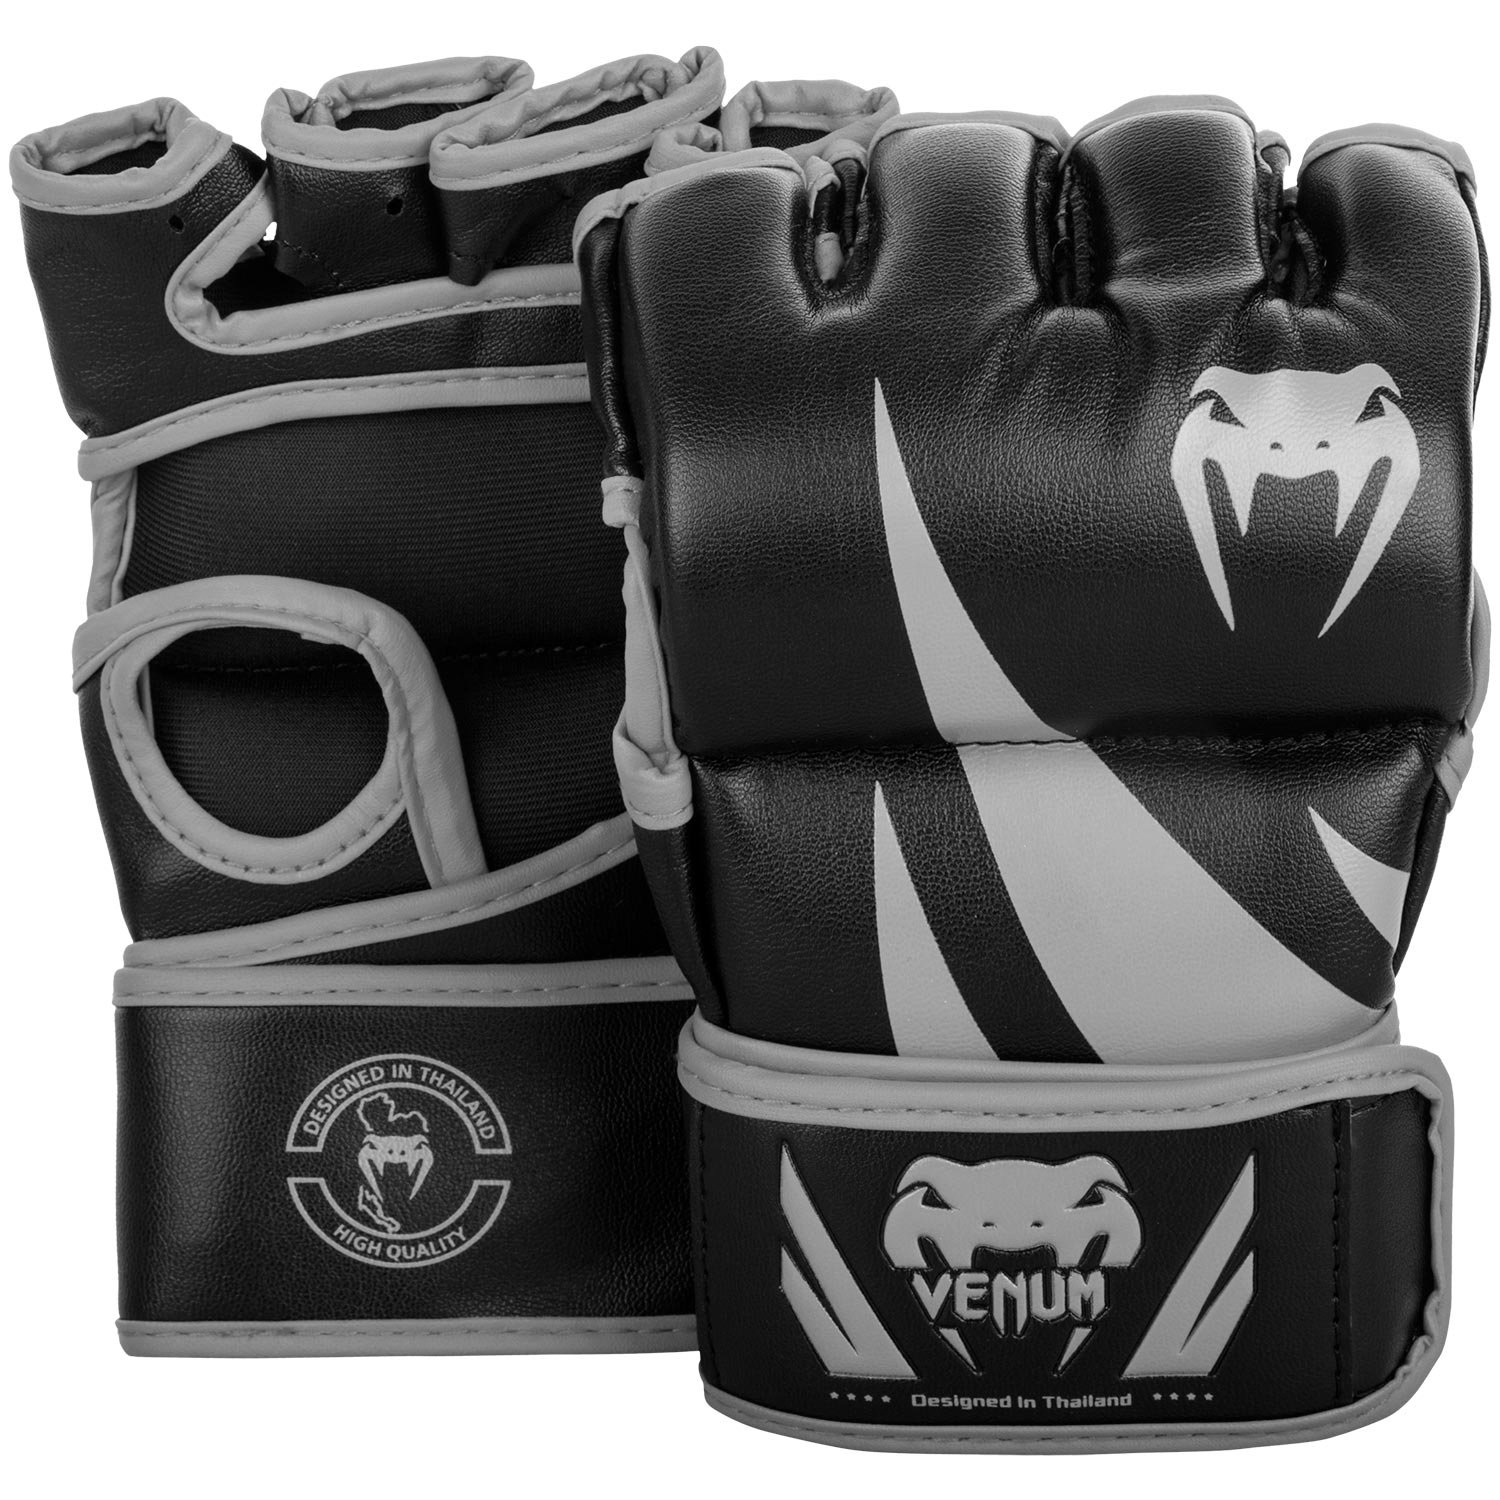 Venum Challenger MMA Gloves - Without Thumb - L/XL, Black/Grey, Large/X-Large by Venum